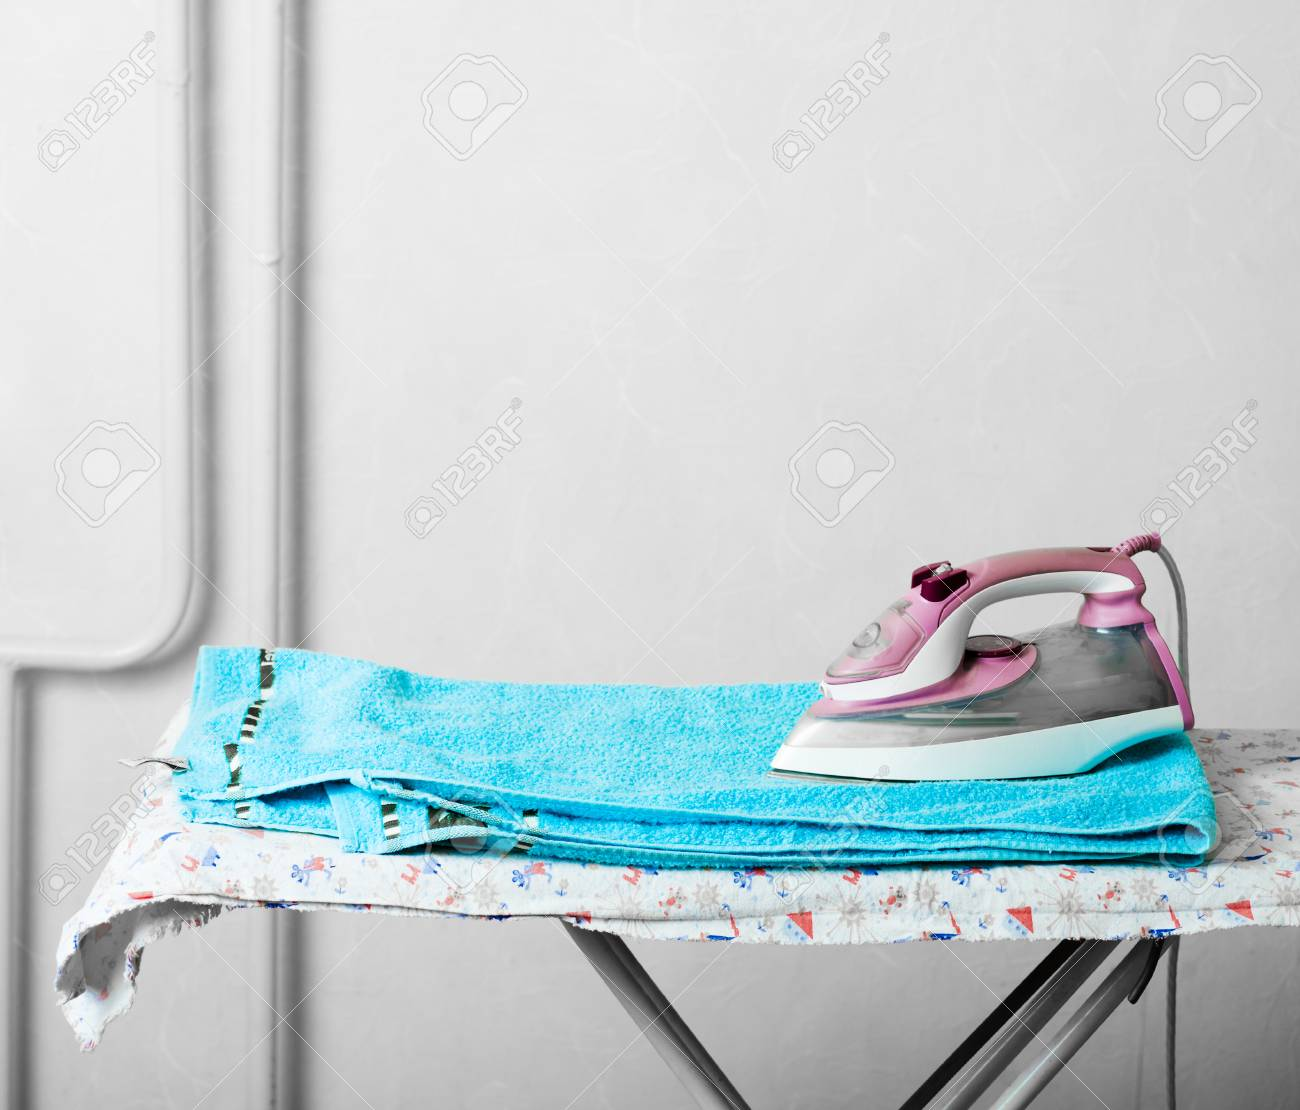 Pile of towels and smoothing-iron on the table and a lot of copyspace Stock Photo - 24106113